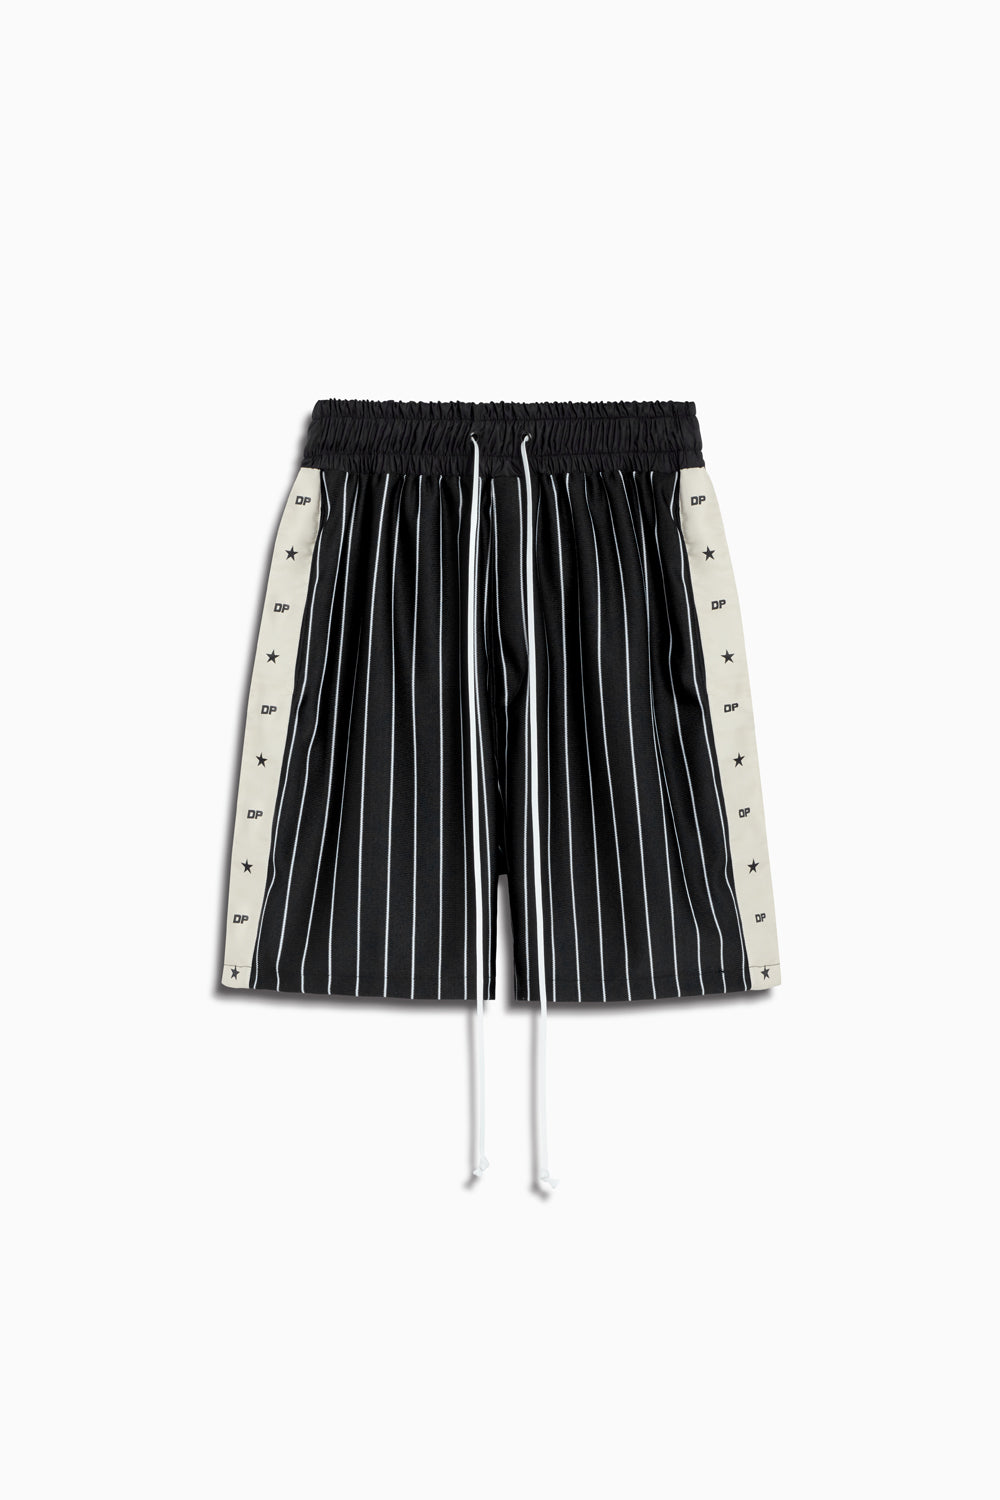 track team gym short in black stripe/ivory by daniel patrick